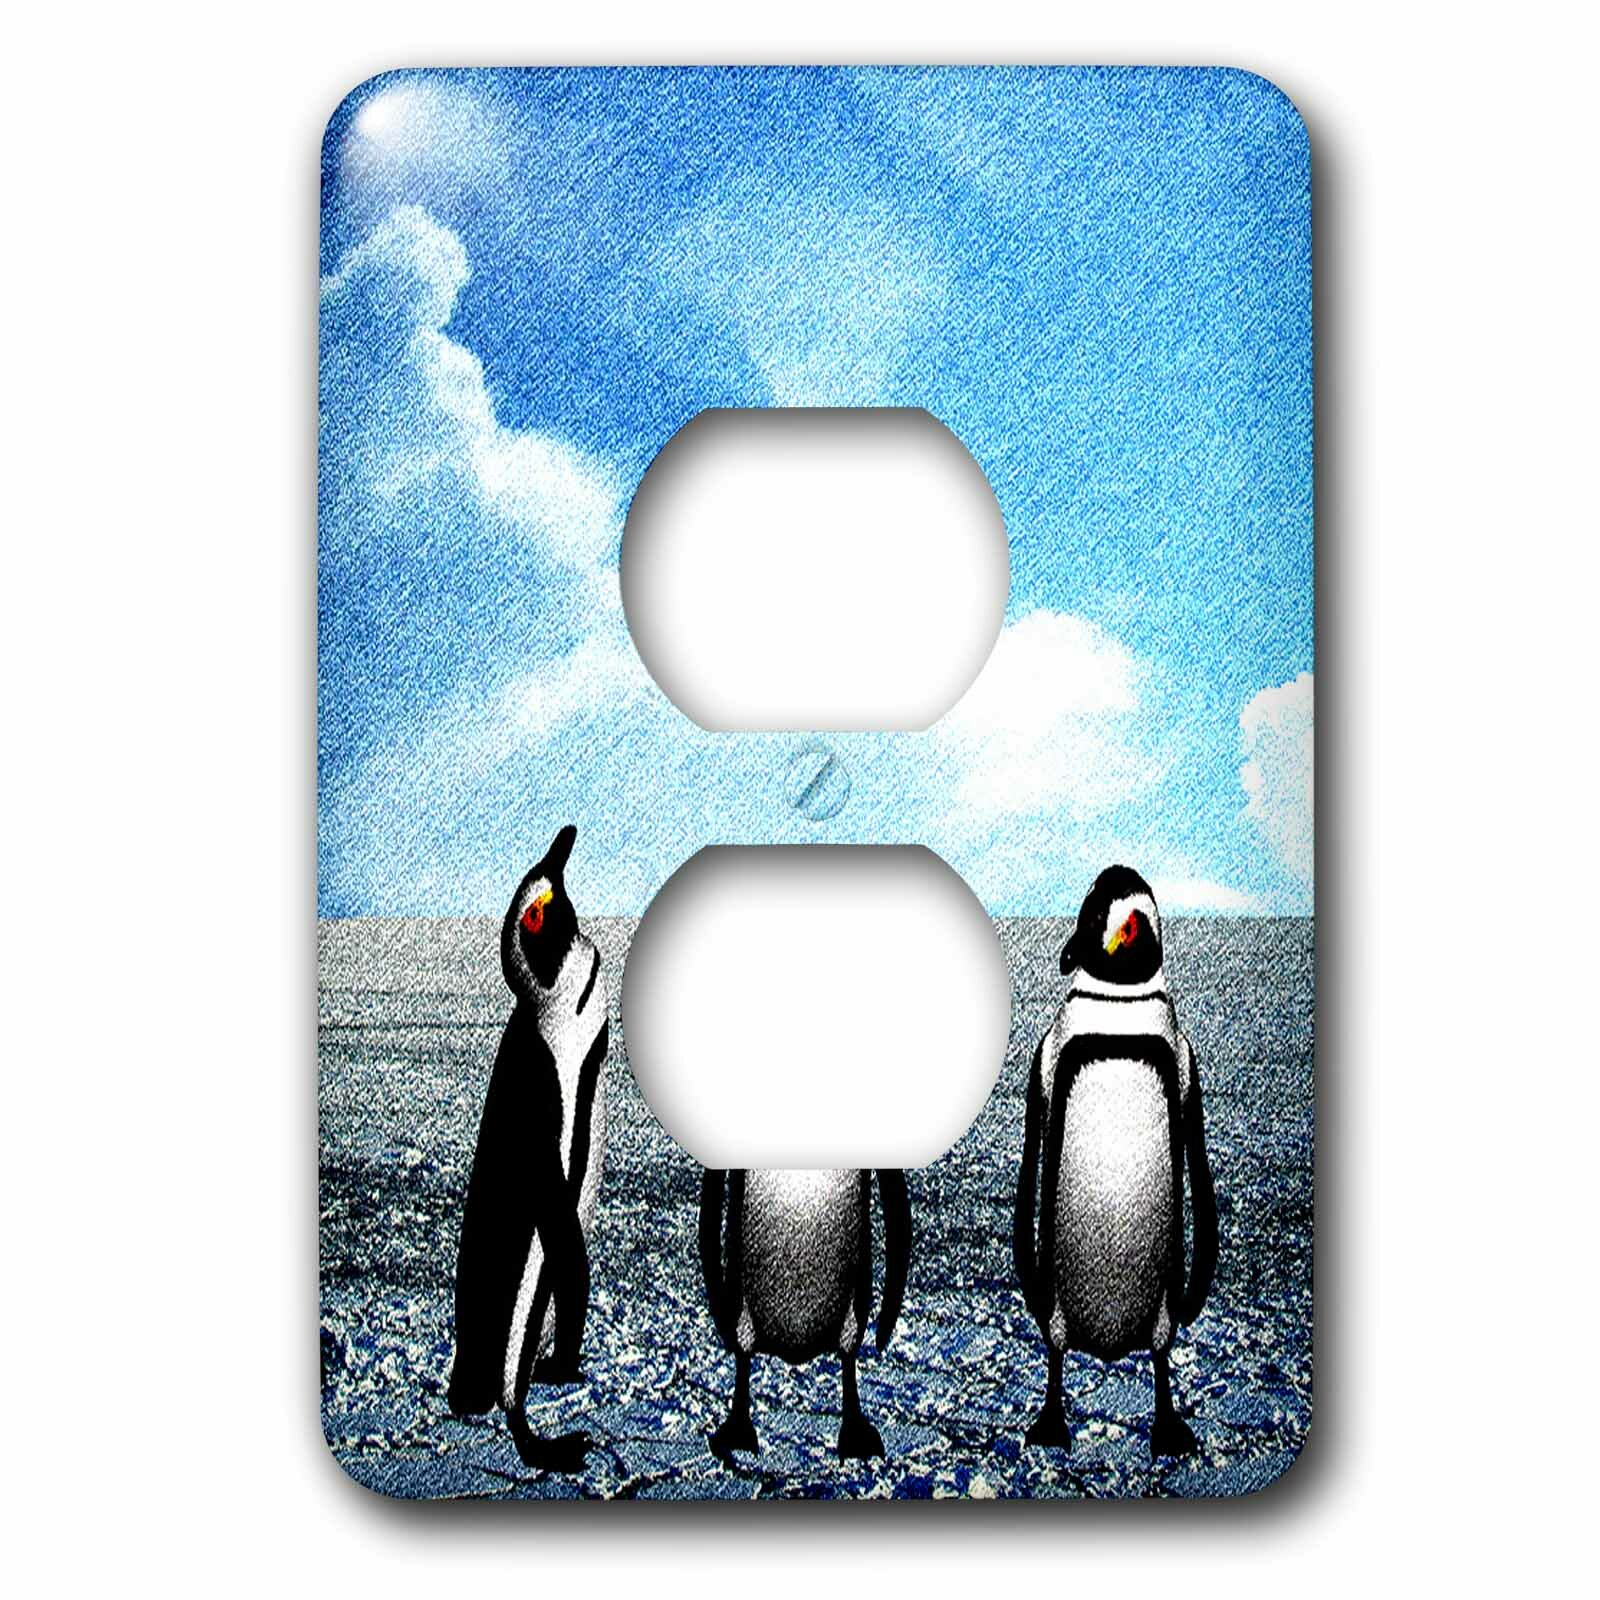 3drose Penguins On An Ice Flow Sketch 1 Gang Duplex Outlet Wall Plate